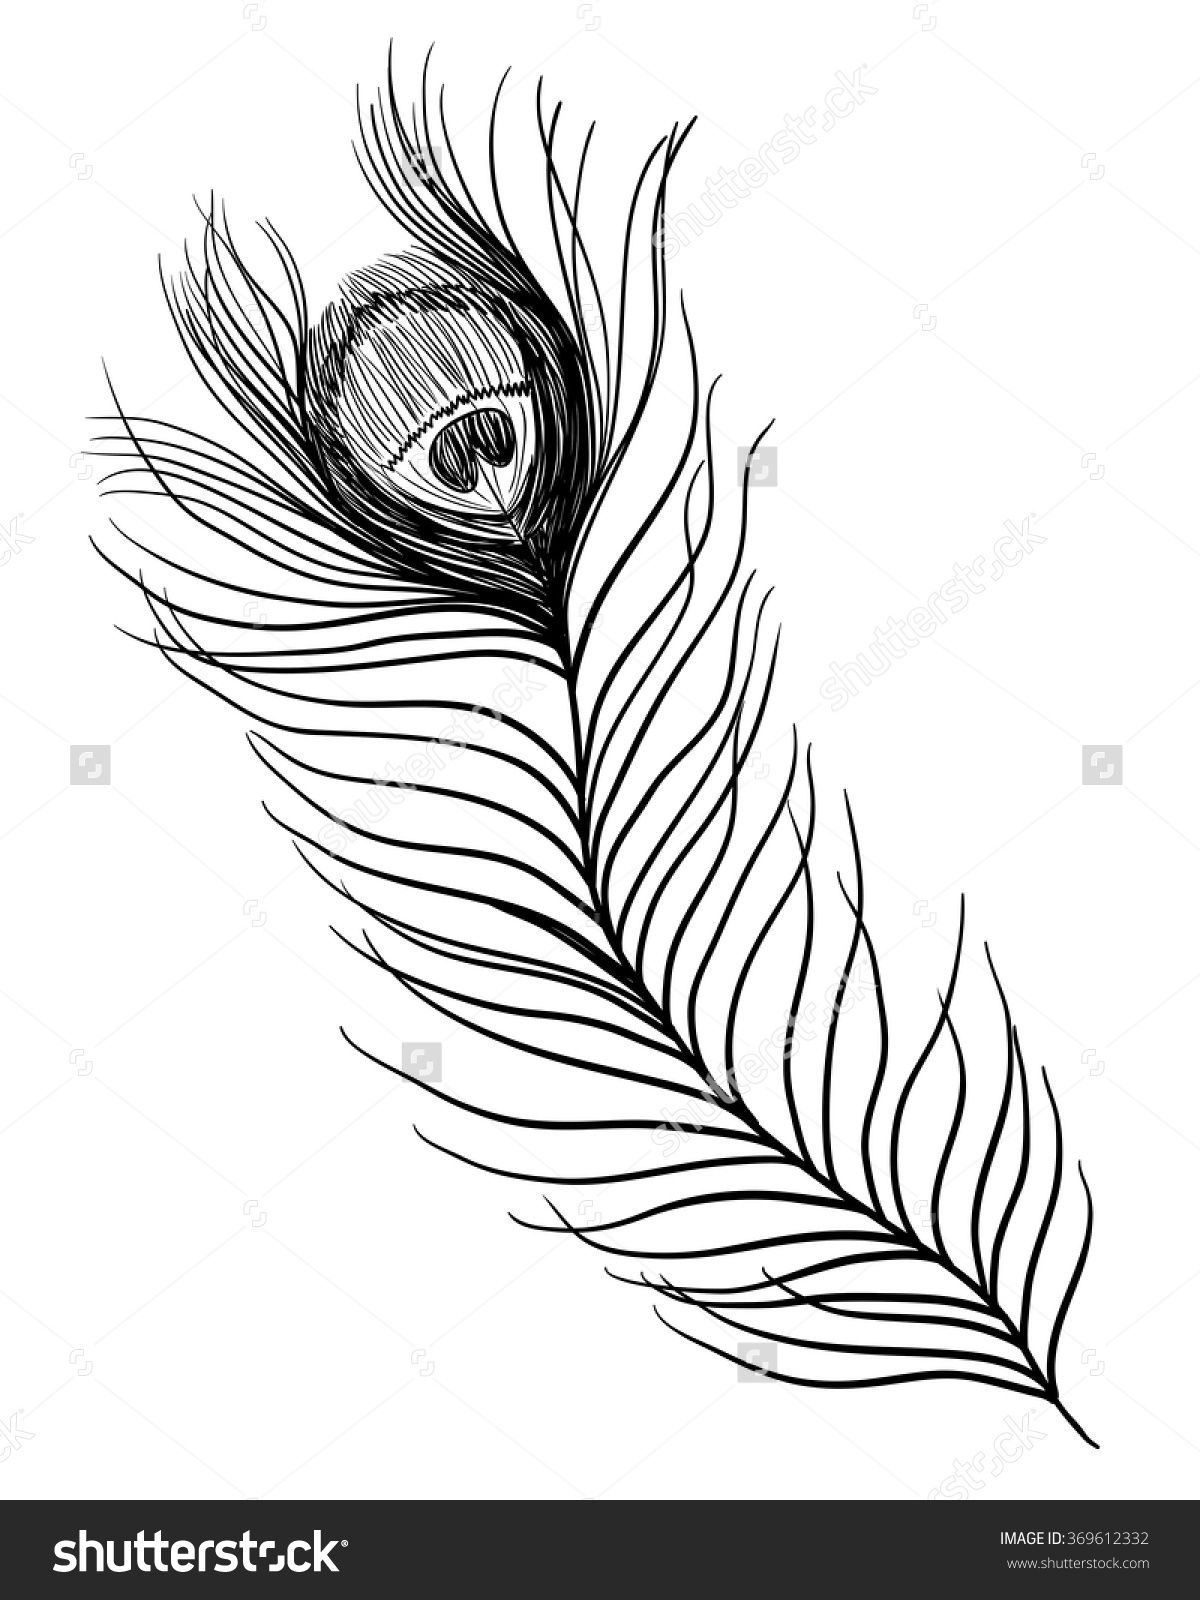 Peacock Feather Vector Black And White Illustration Tattoo Black And White Illustration Black And White Feather Vector